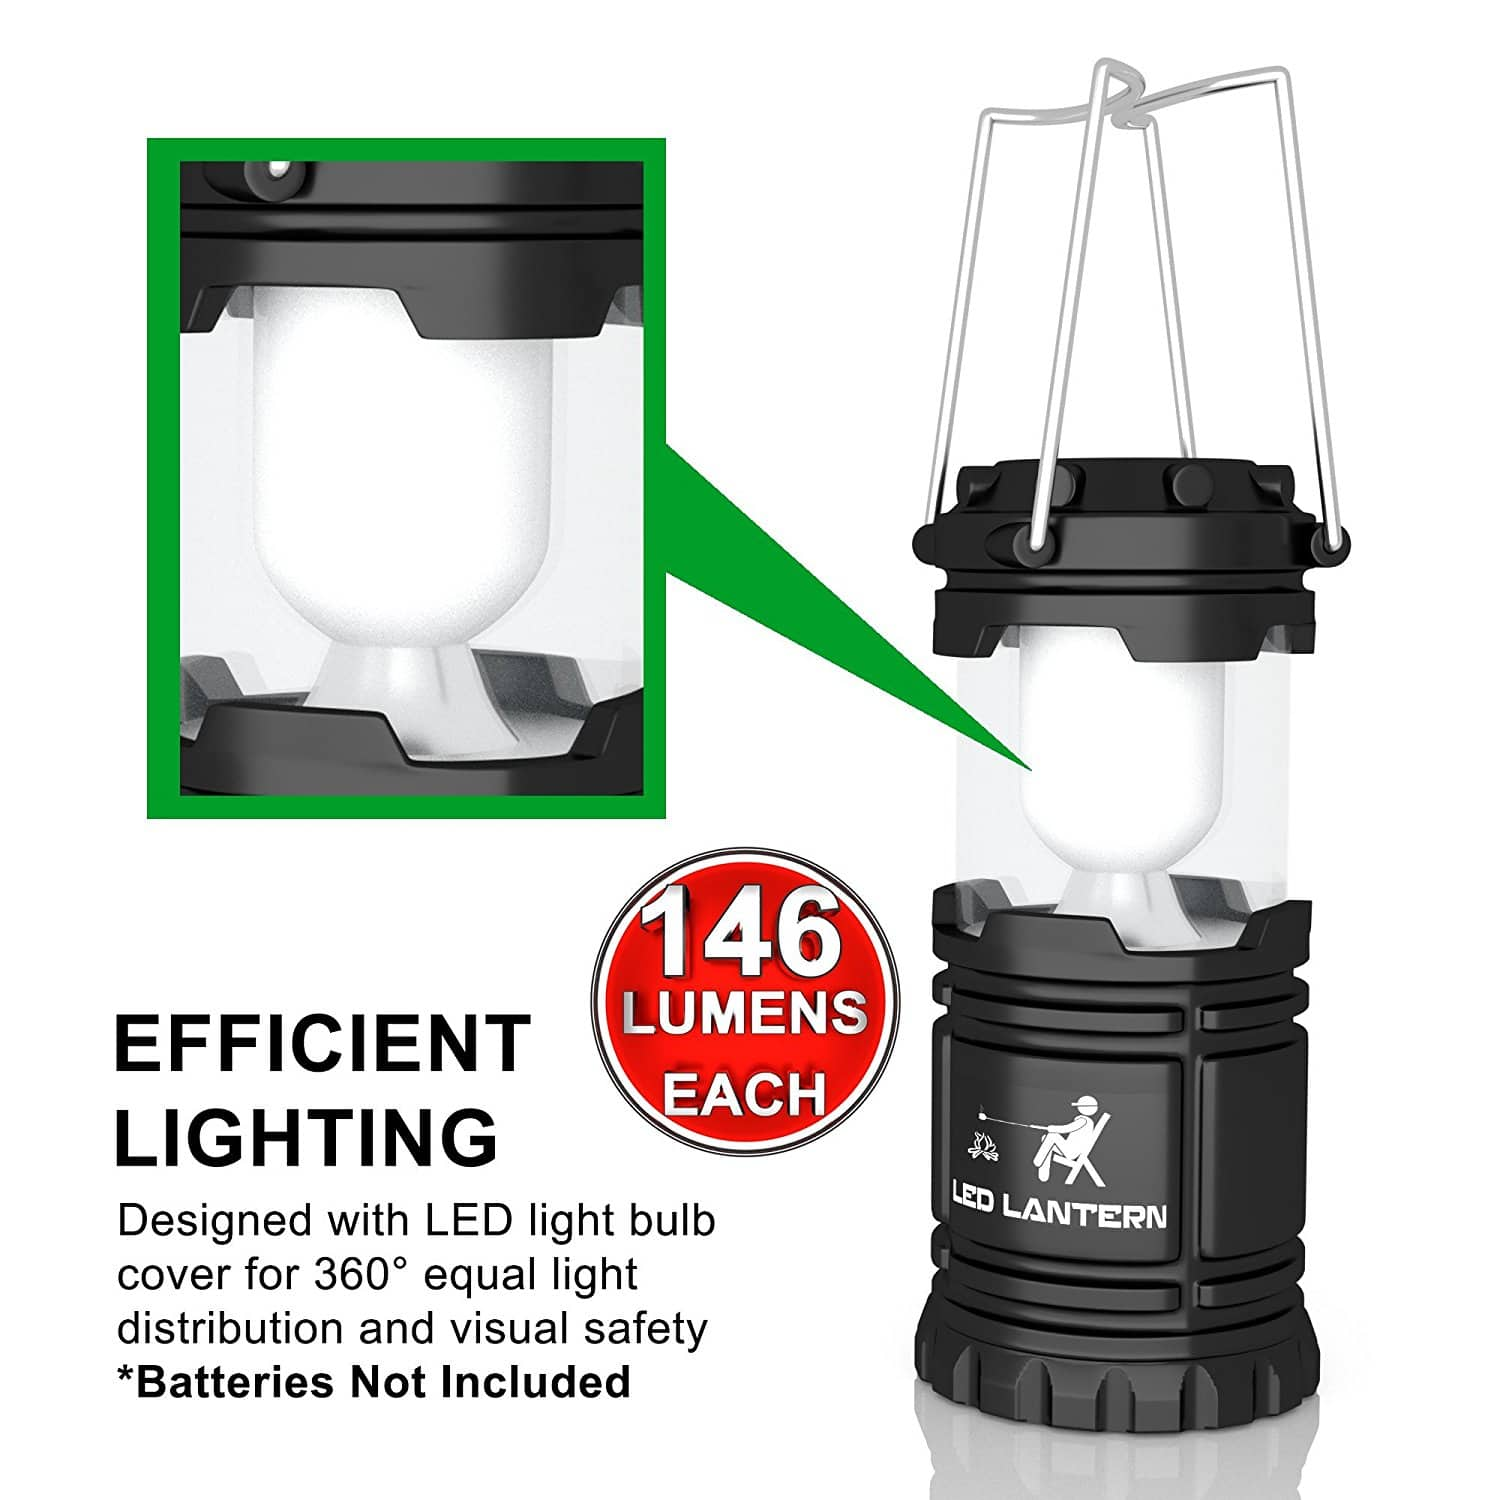 MalloMe LED Camping Lantern Flashlights Camping Gear Accessories Equipment - Great for Emergency, Tent Light, Backpacking, 4 Pack Gift Set $15.99